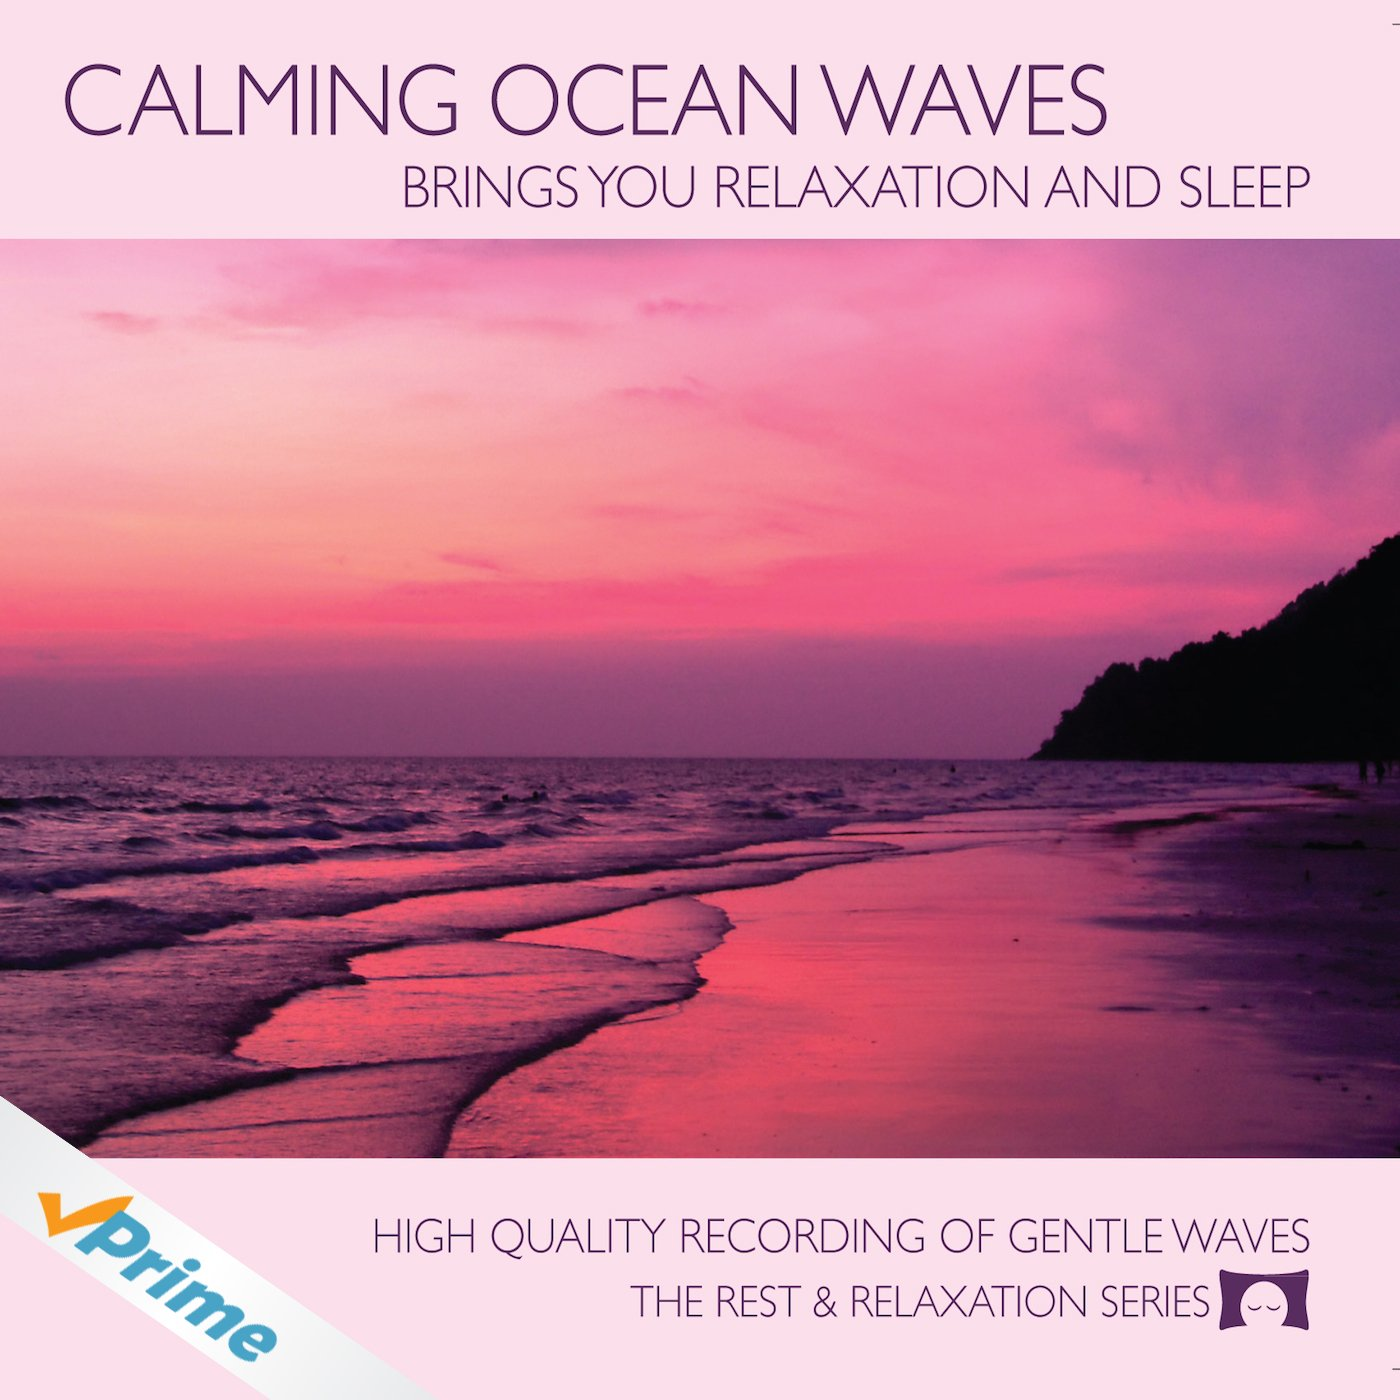 Calming Ocean Waves - Nature Sounds CD for Relaxation, Meditation and Sleep - Nature's Perfect White Noise by The Rhythm Tree - The Rest and Relaxation Series